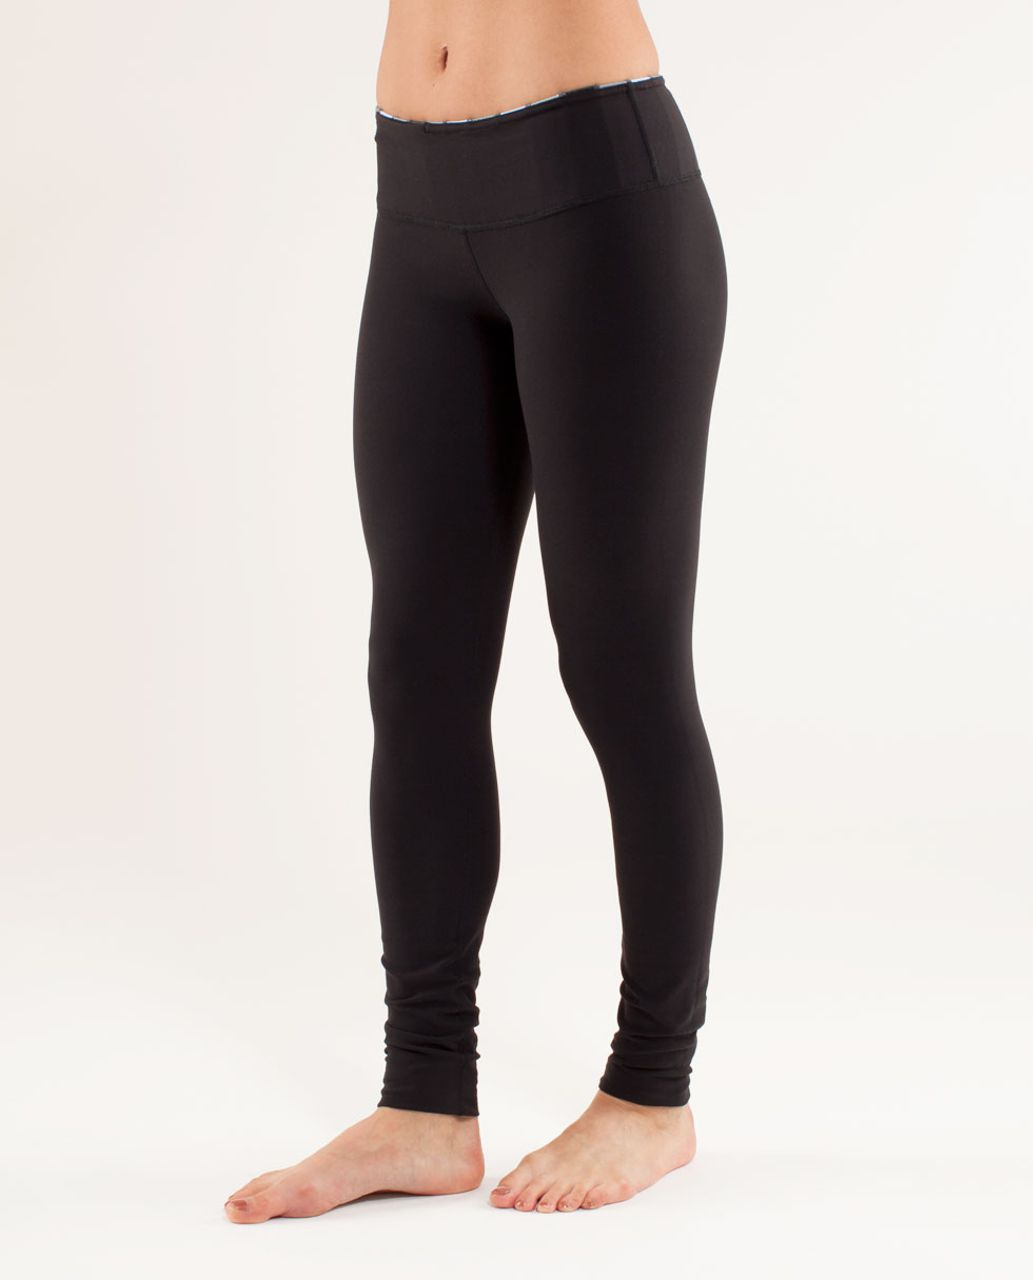 Lululemon Wunder Under Pant - Black /  Quilting Spring 29